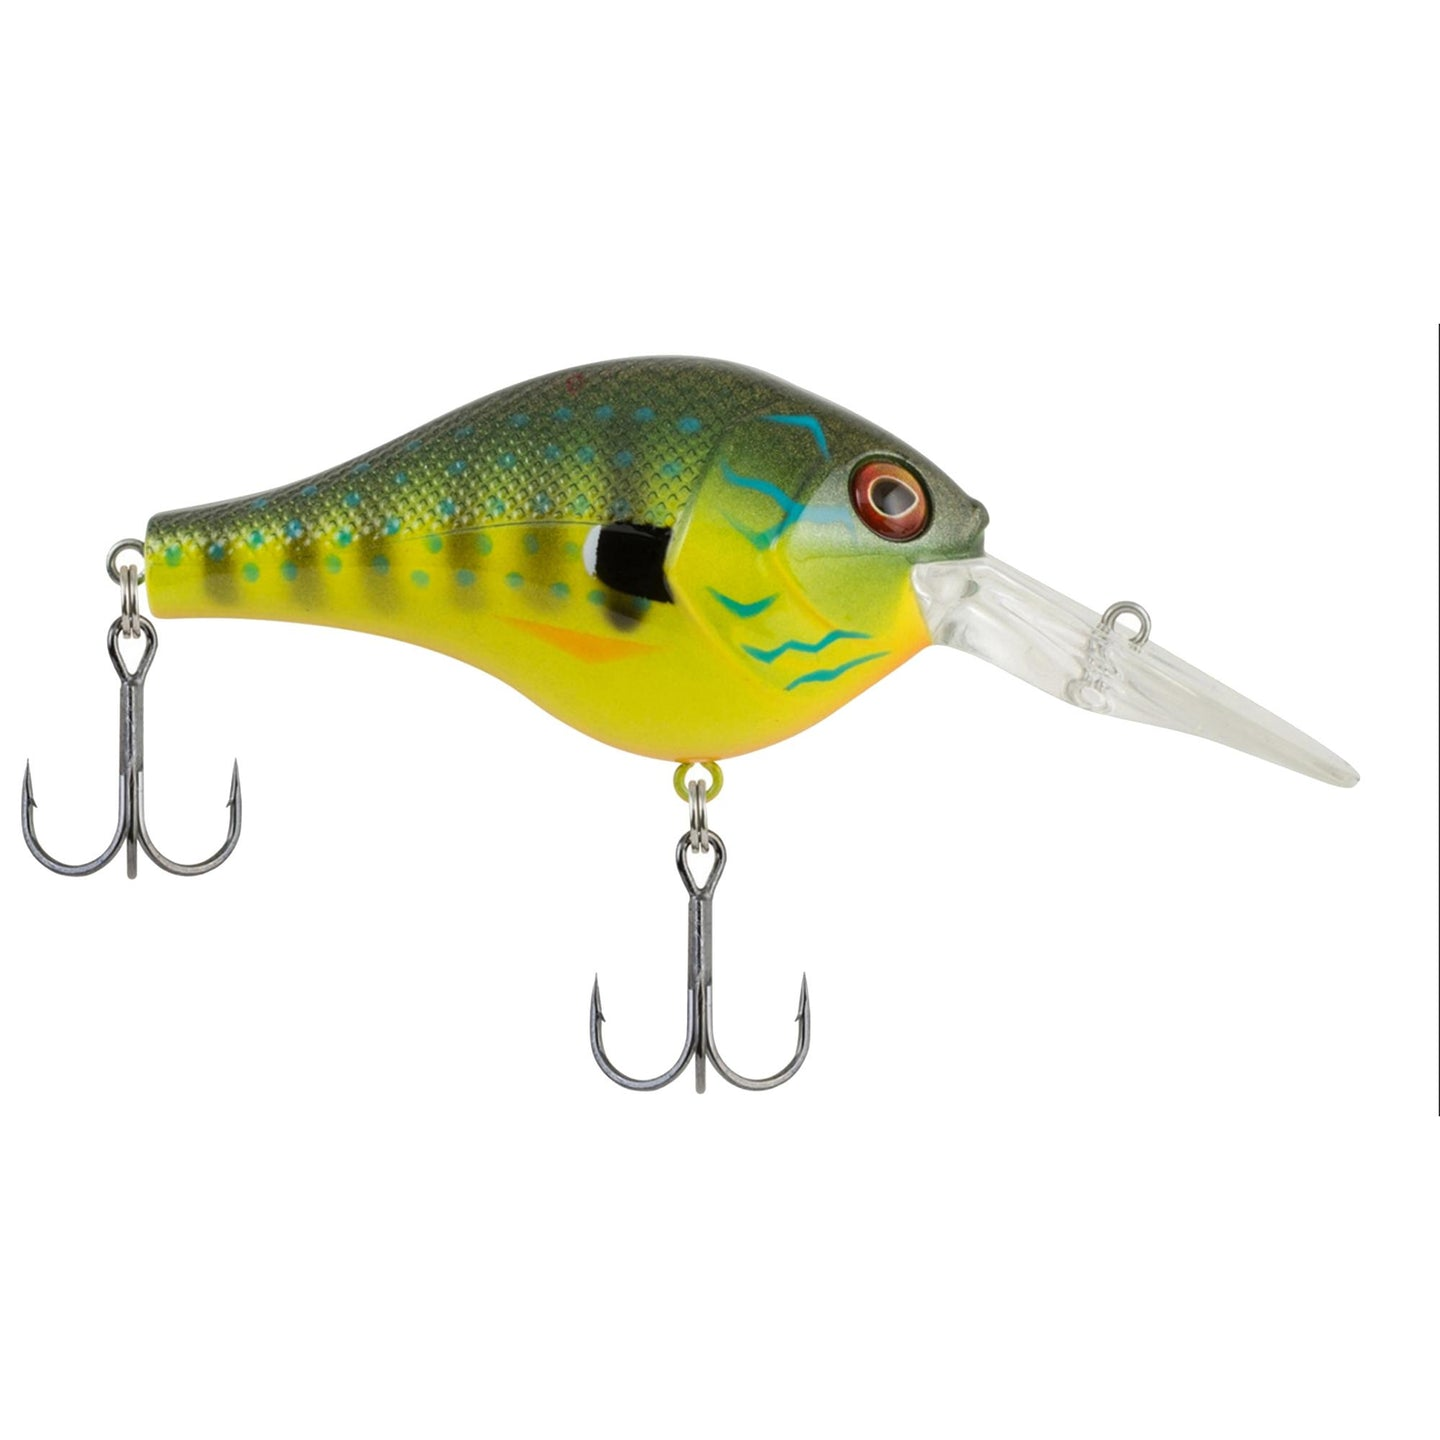 Digger Hard Bait Lure - 1 3-4